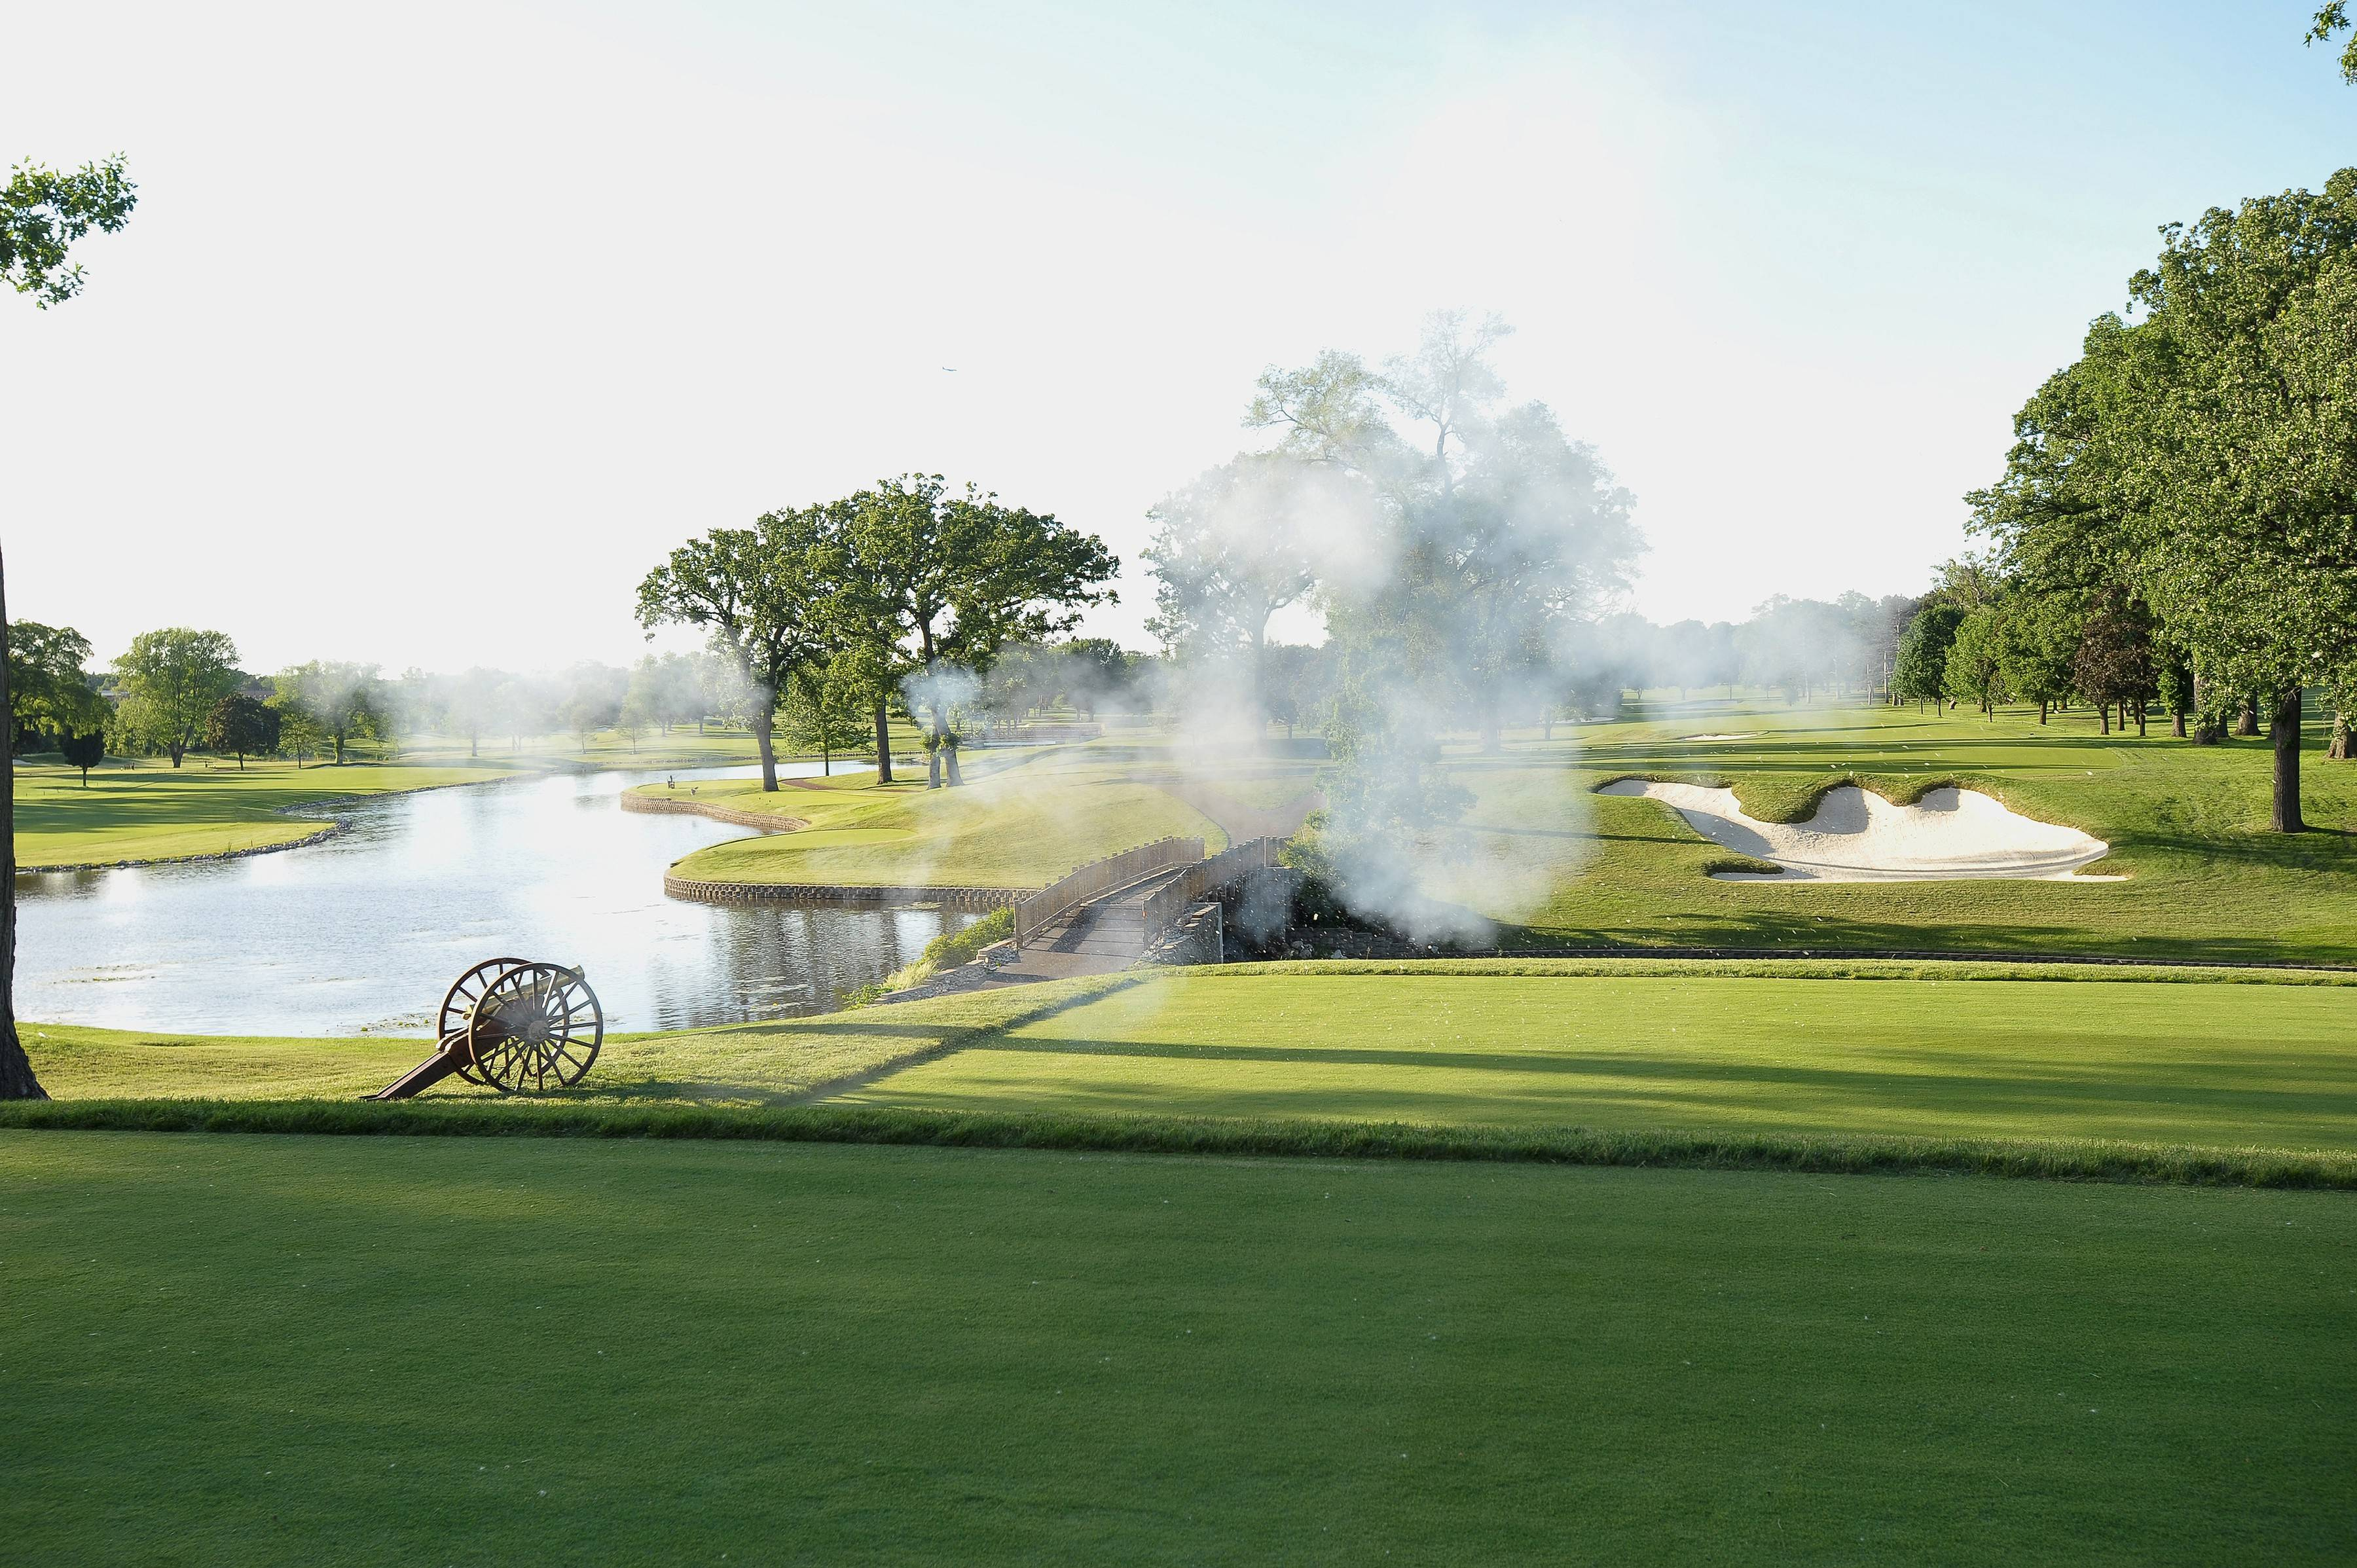 For the ribbon-cutting ceremony on June 13, golf course architect Tom Doak lit the fuse on a celebratory cannon blast that marked the beginning of a new era at 90-year-old Medinah Country Club. Members say a $6.5 million renovation of Course No. 1 will make it a rival of the popular No. 3 course.